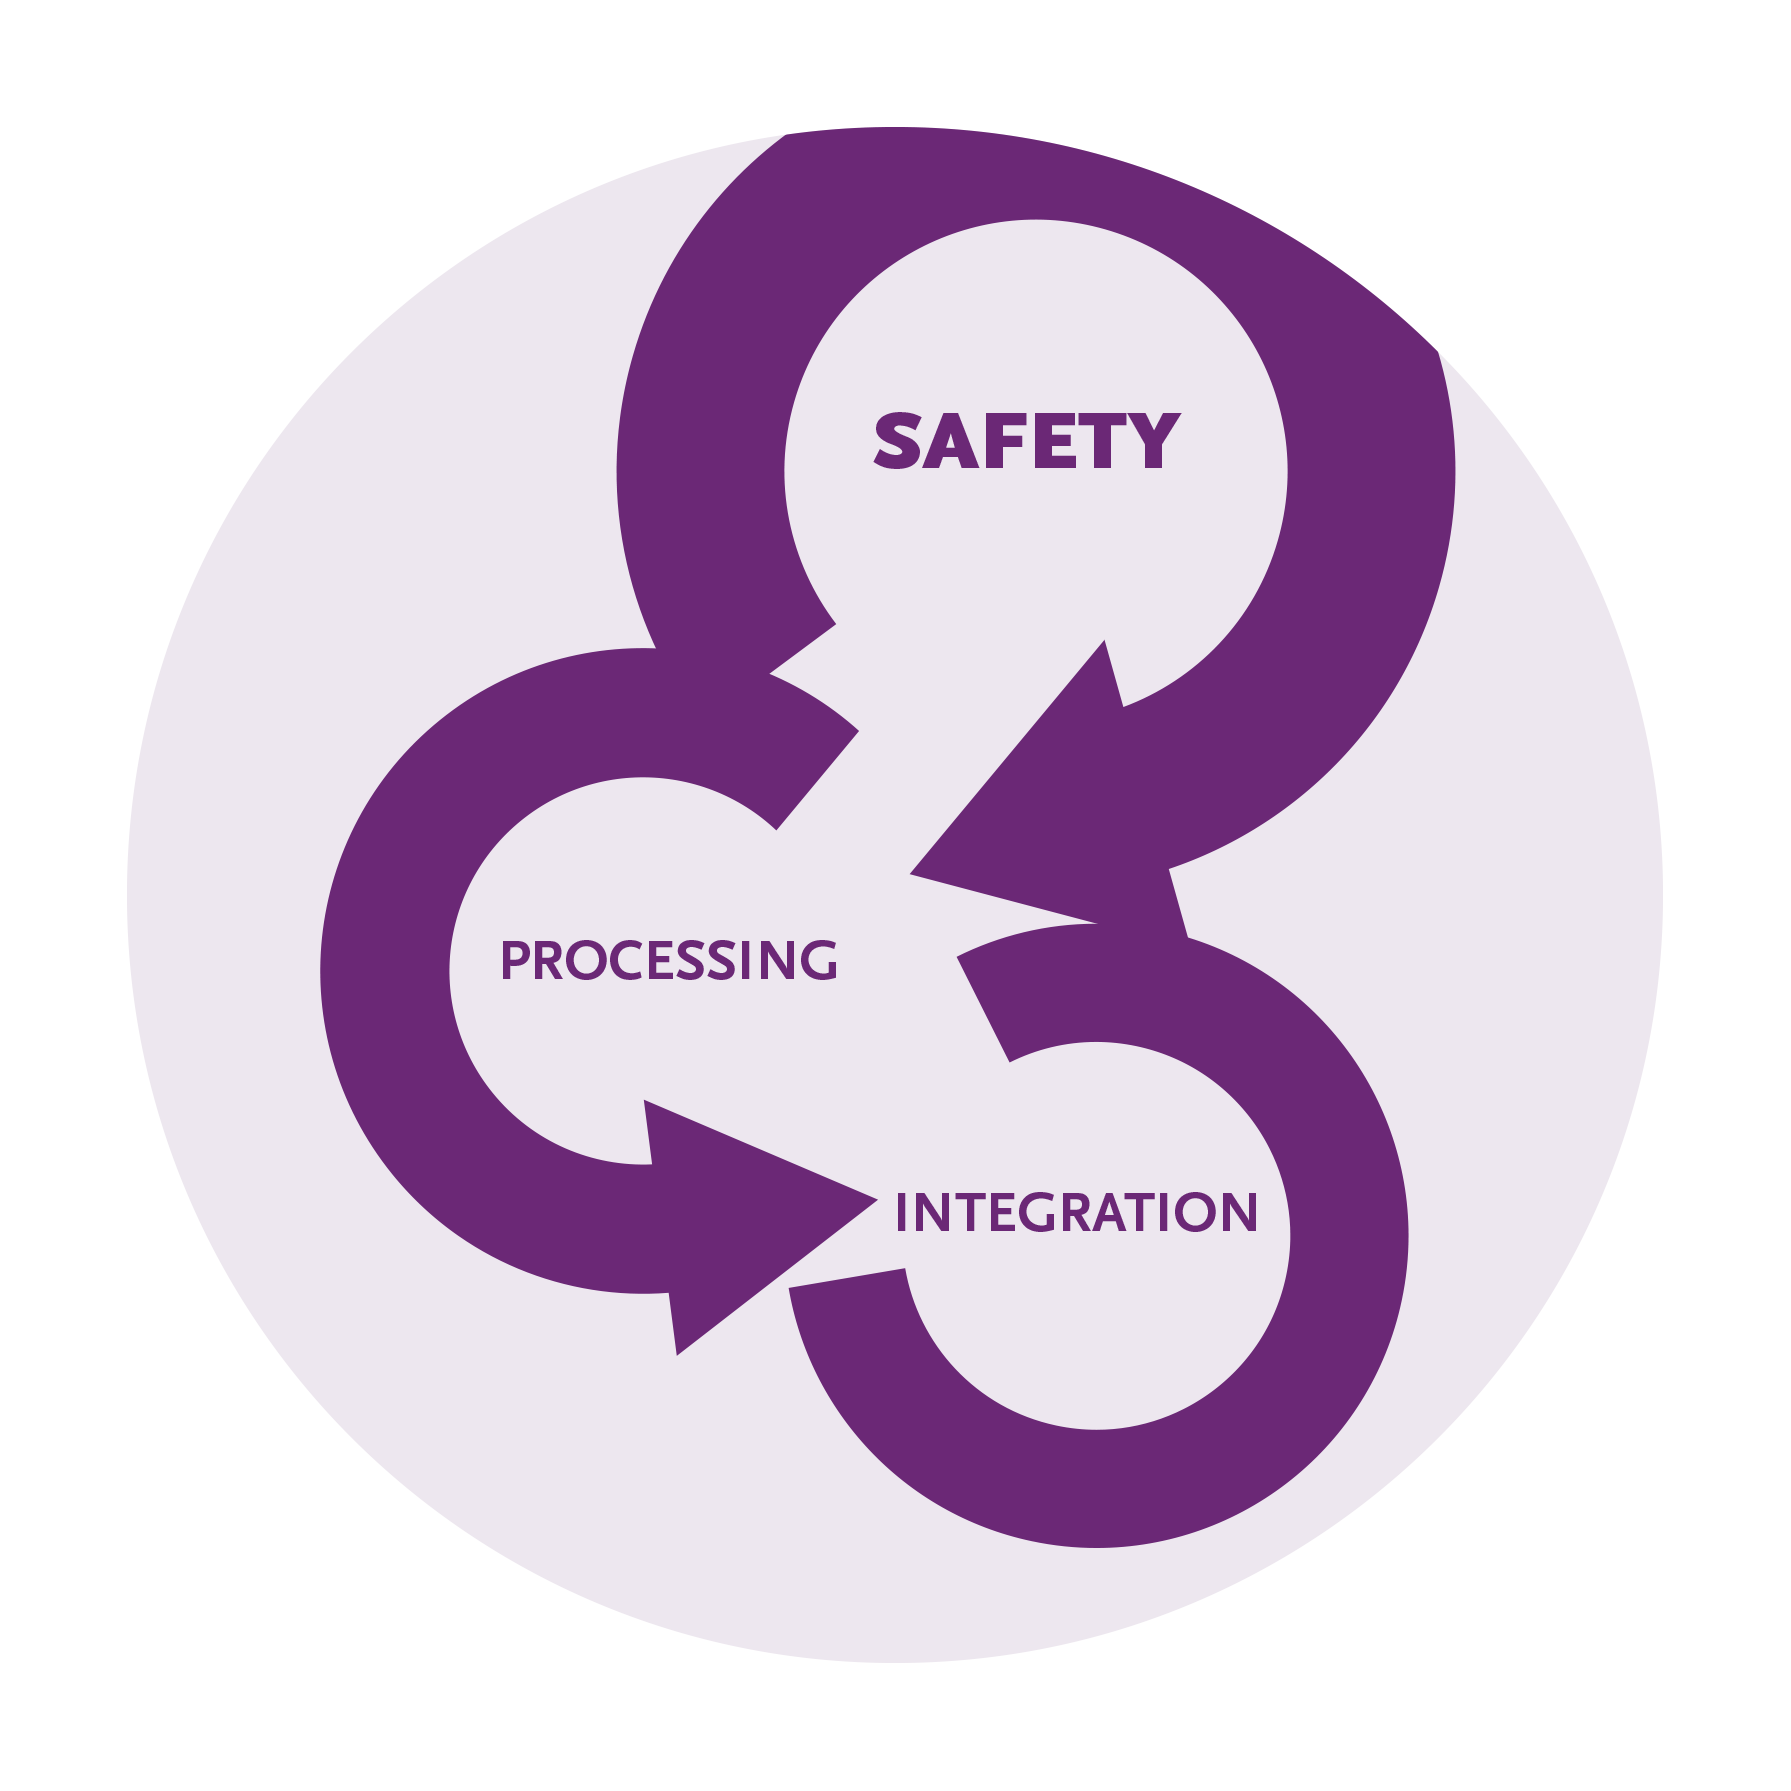 Safety, Provcessing and Integration are the three stages of therapy